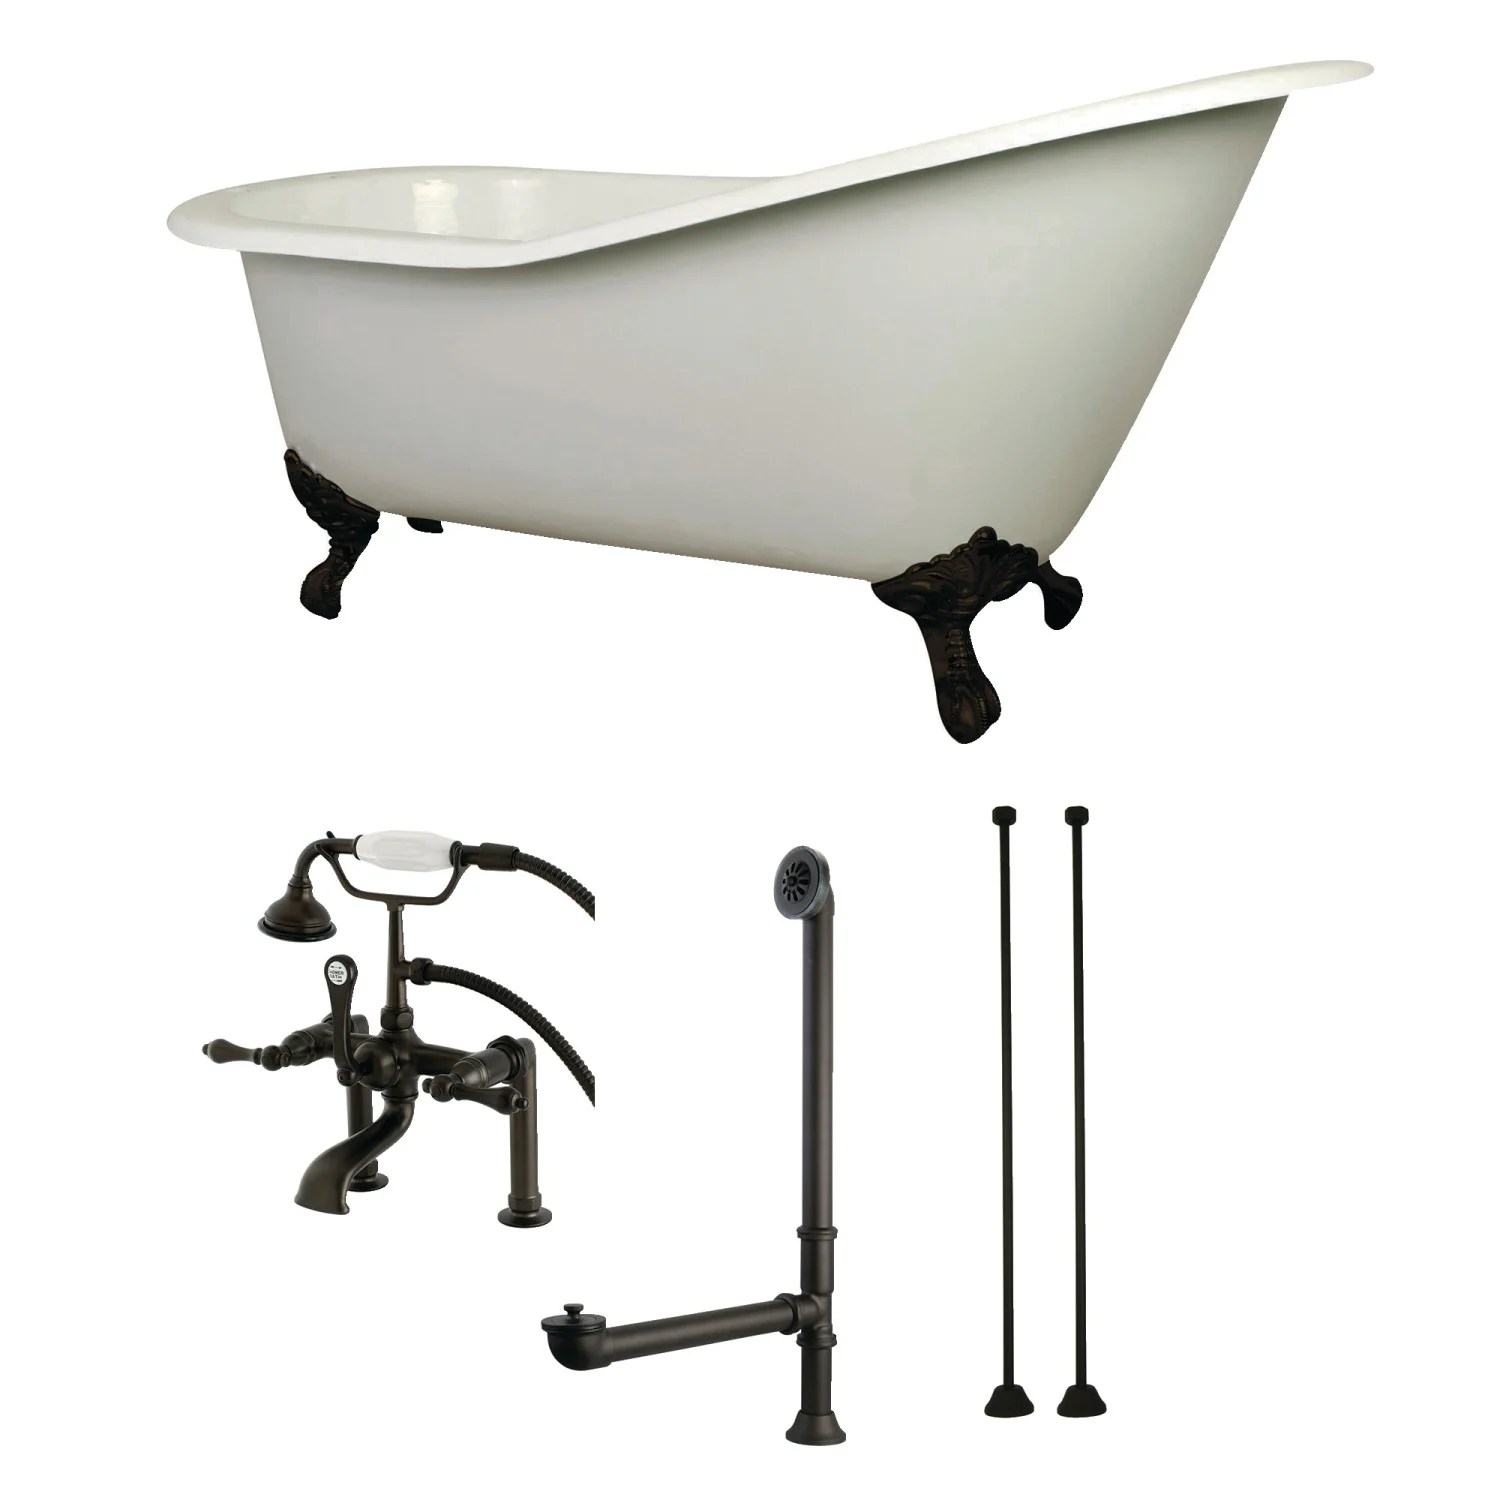 Aqua Eden Kct7d653129c5 62 Inch Cast Iron Single Slipper Clawfoot Tub Combo With Faucet And Supply Lines White Oil Rubbed Bronze